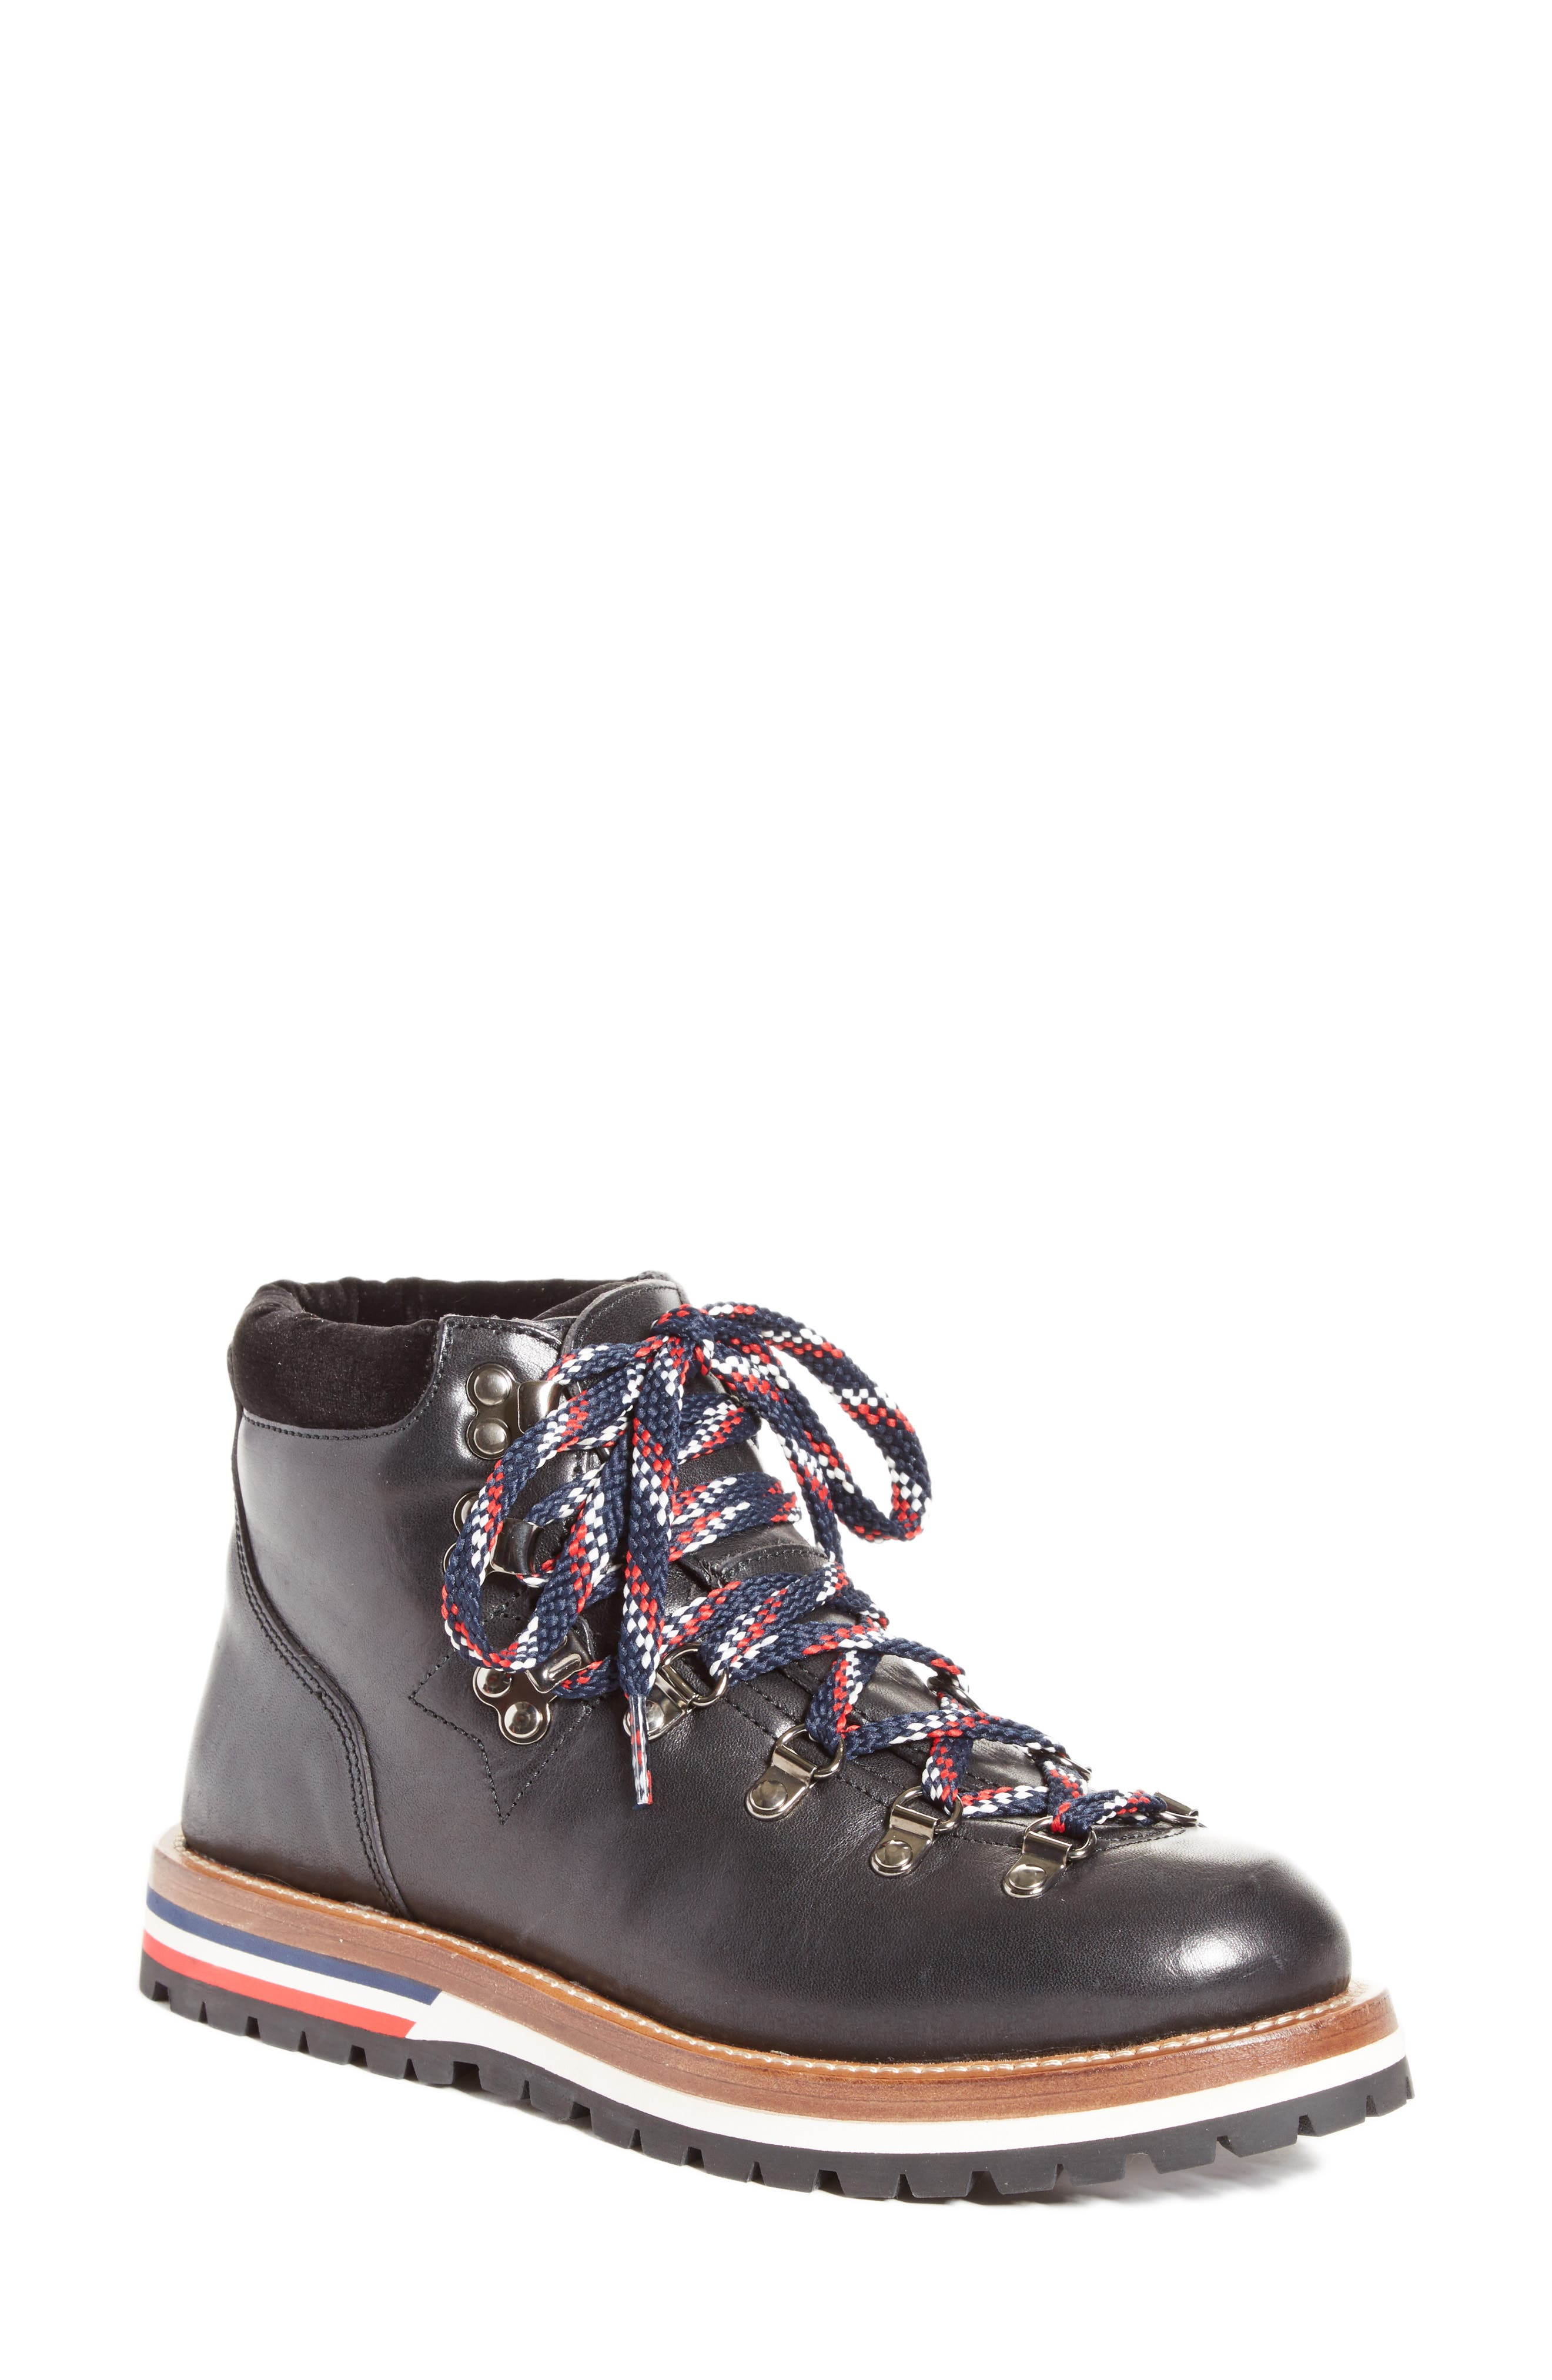 Blanche Lace-up Boot,                         Main,                         color, BLACK